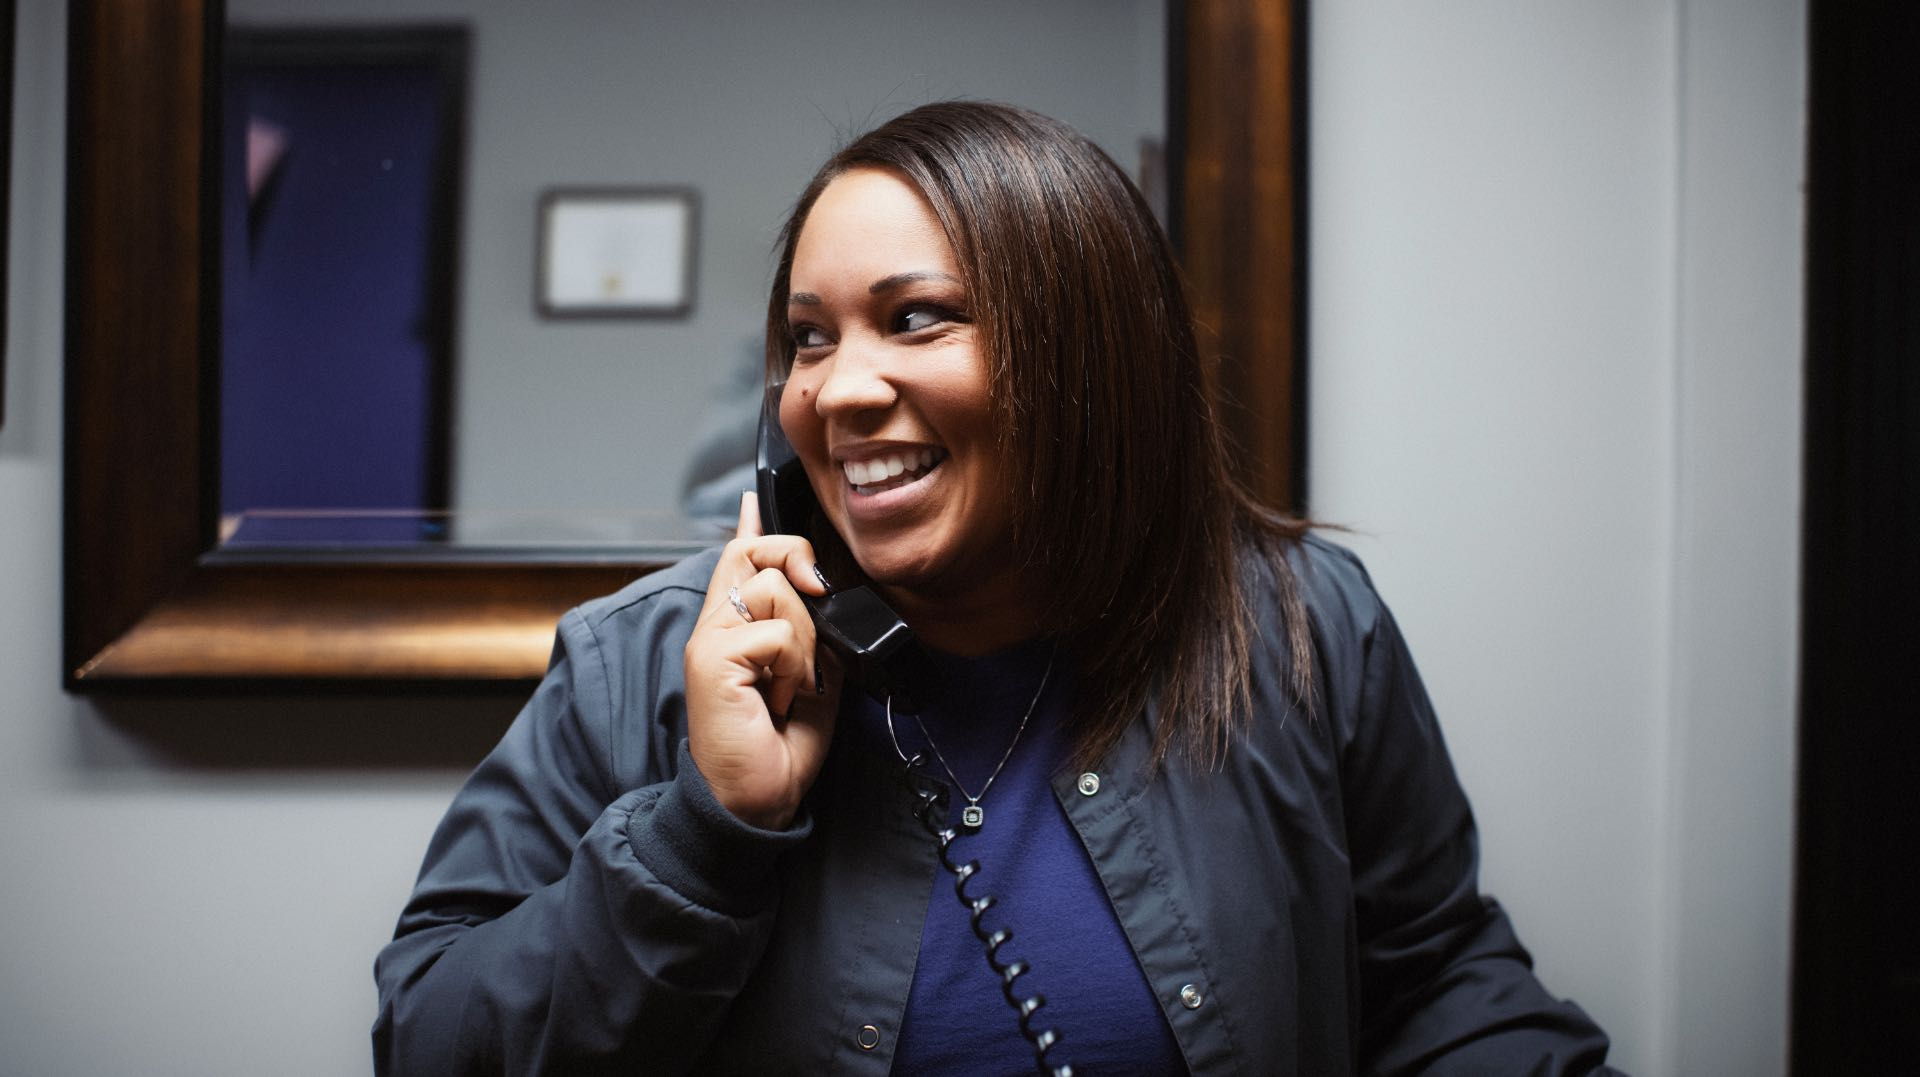 Photo of a team member on the phone with a patient smiling